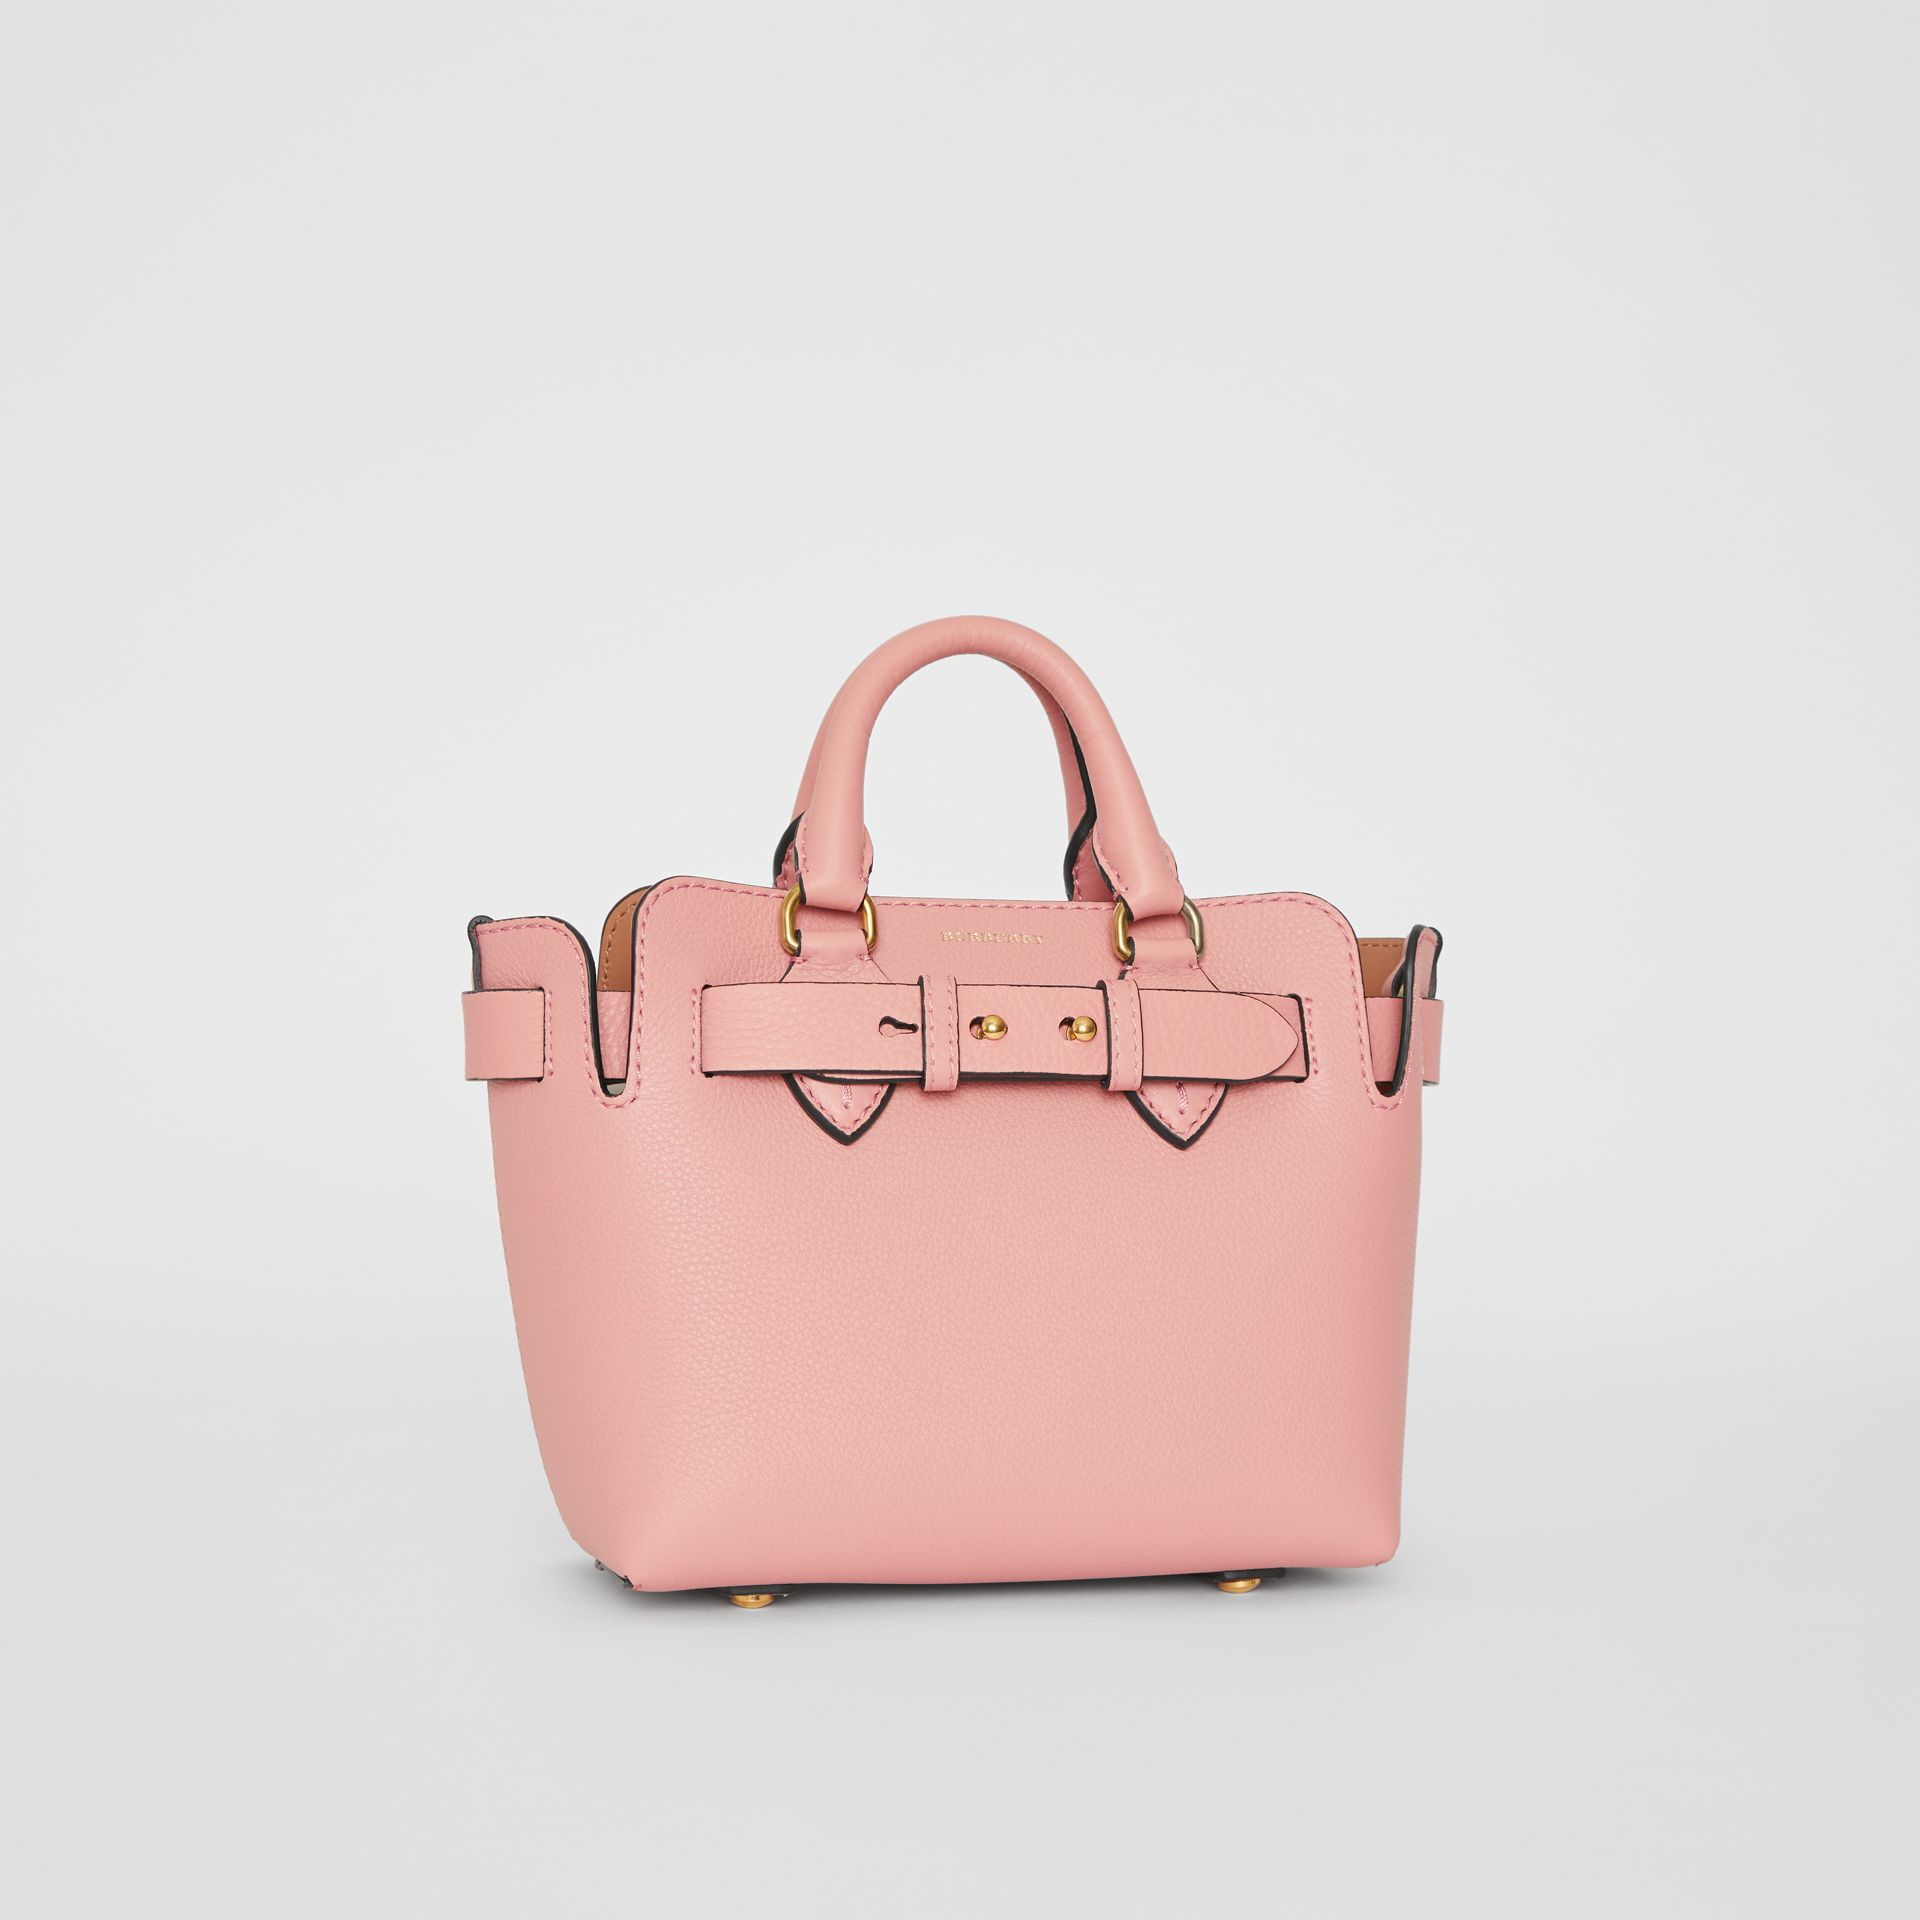 Borsa The Belt mini in pelle (Rosa Cenere) - Donna | Burberry - immagine della galleria 6